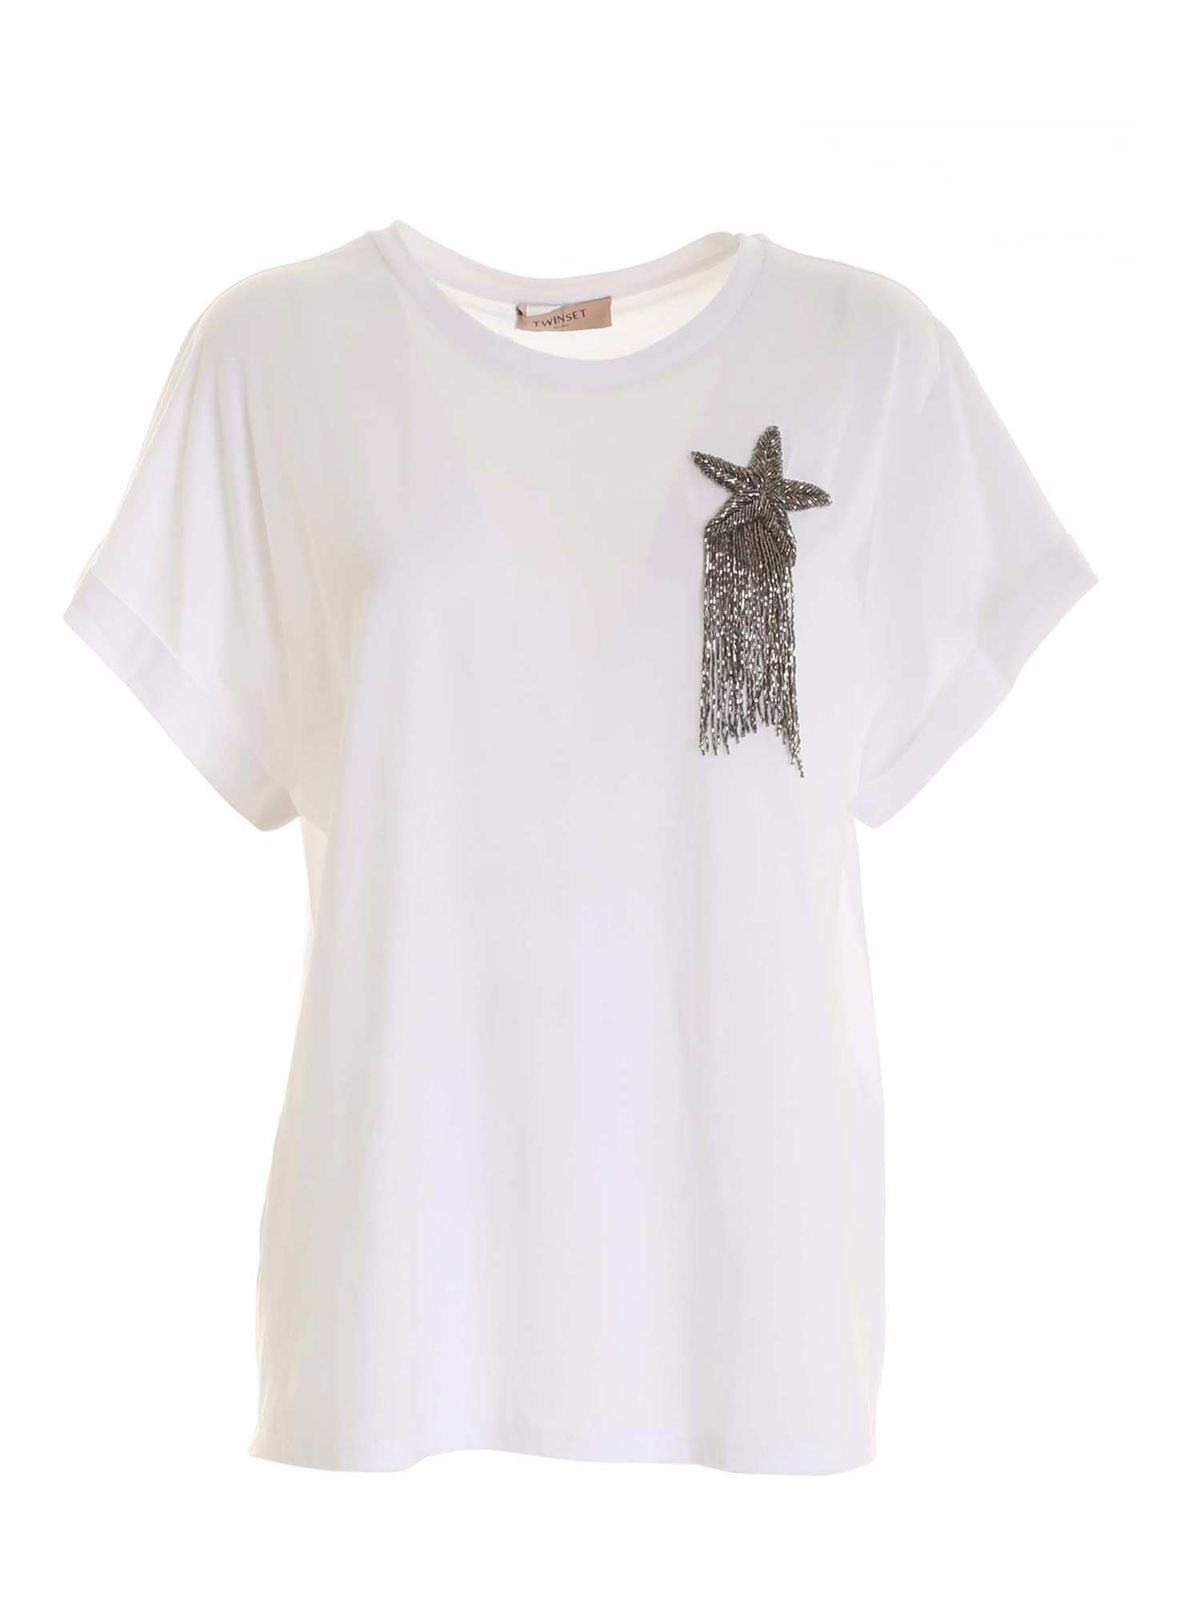 Twinset MICRO BEADS PATCH T-SHIRT IN WHITE